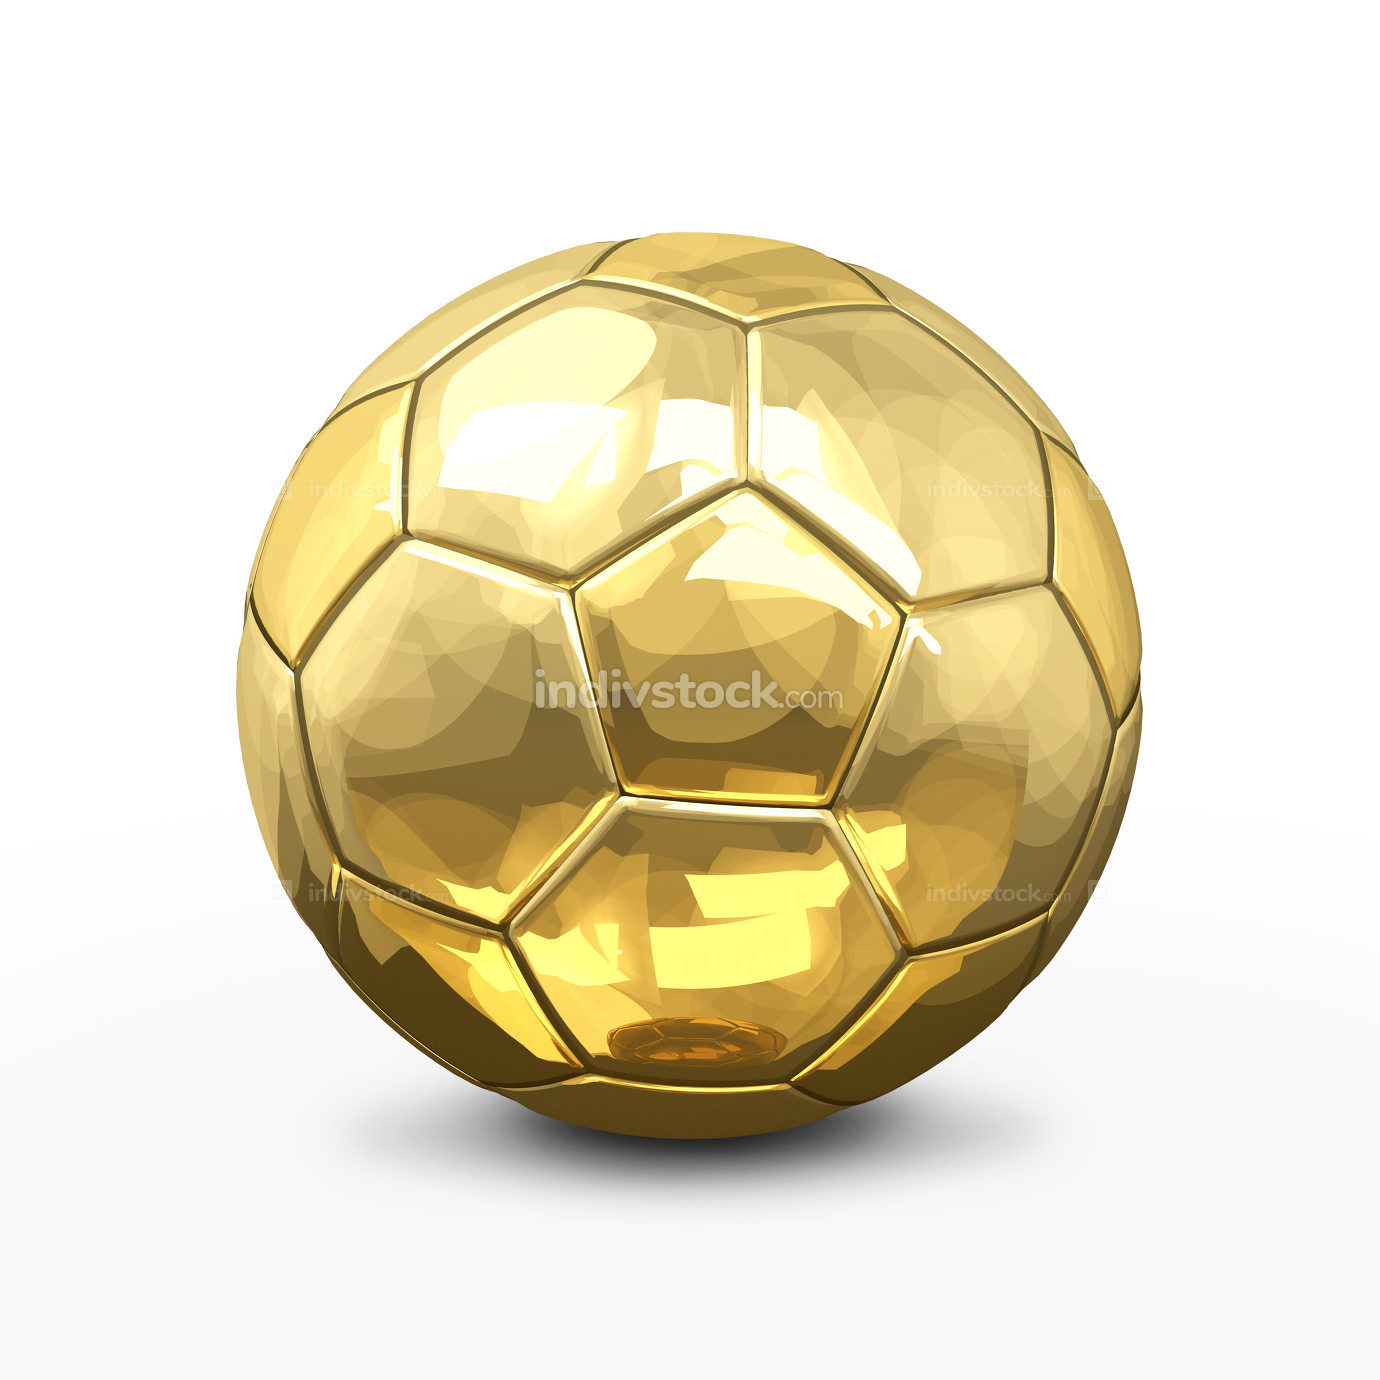 free download: soccer football ball 3d rendering in gold